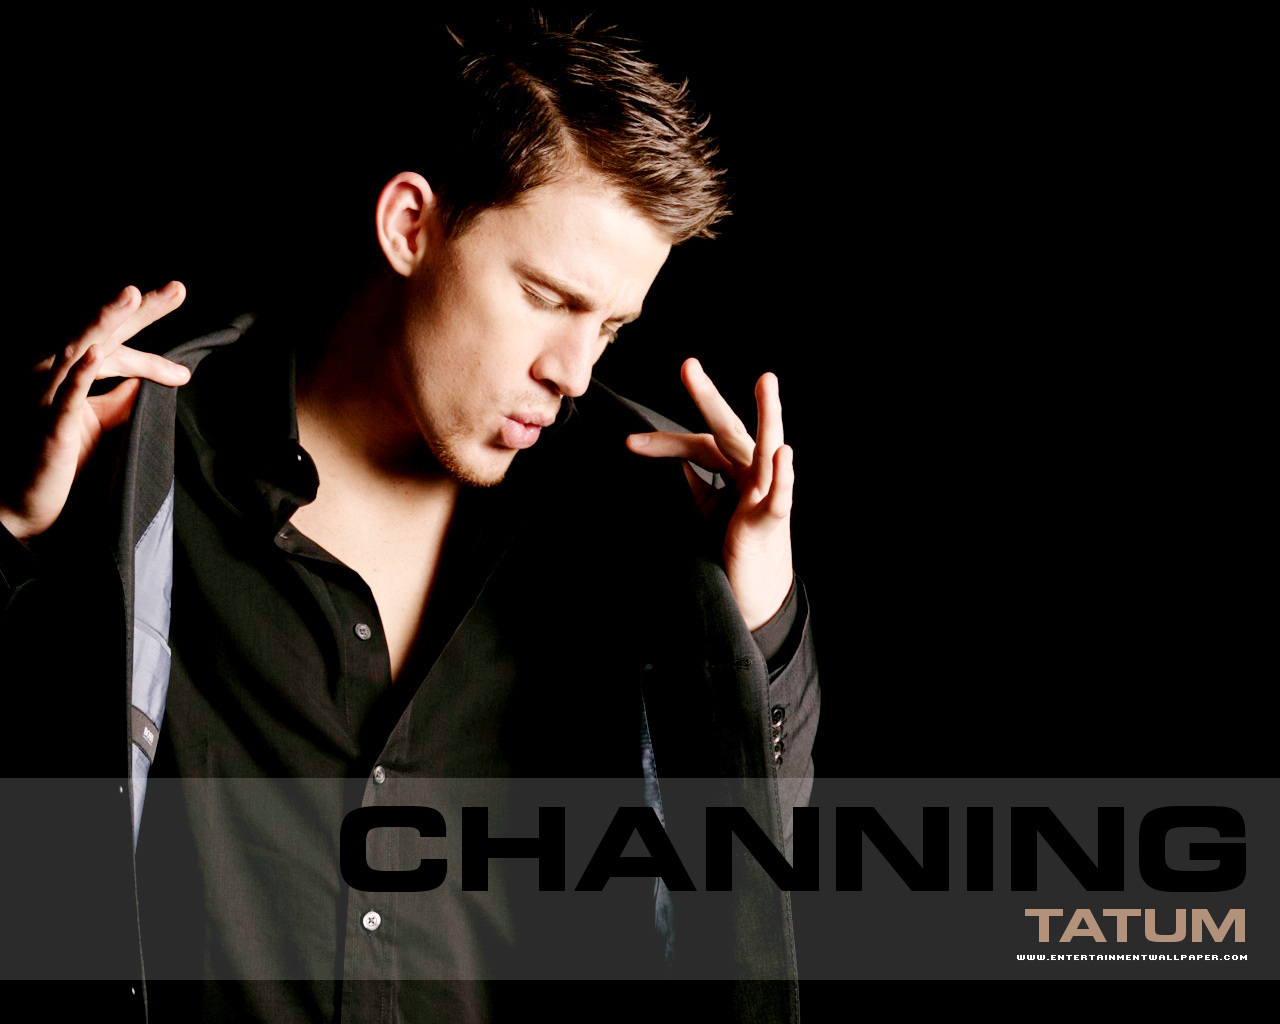 channing channing tatum wallpaper 6466298 fanpop